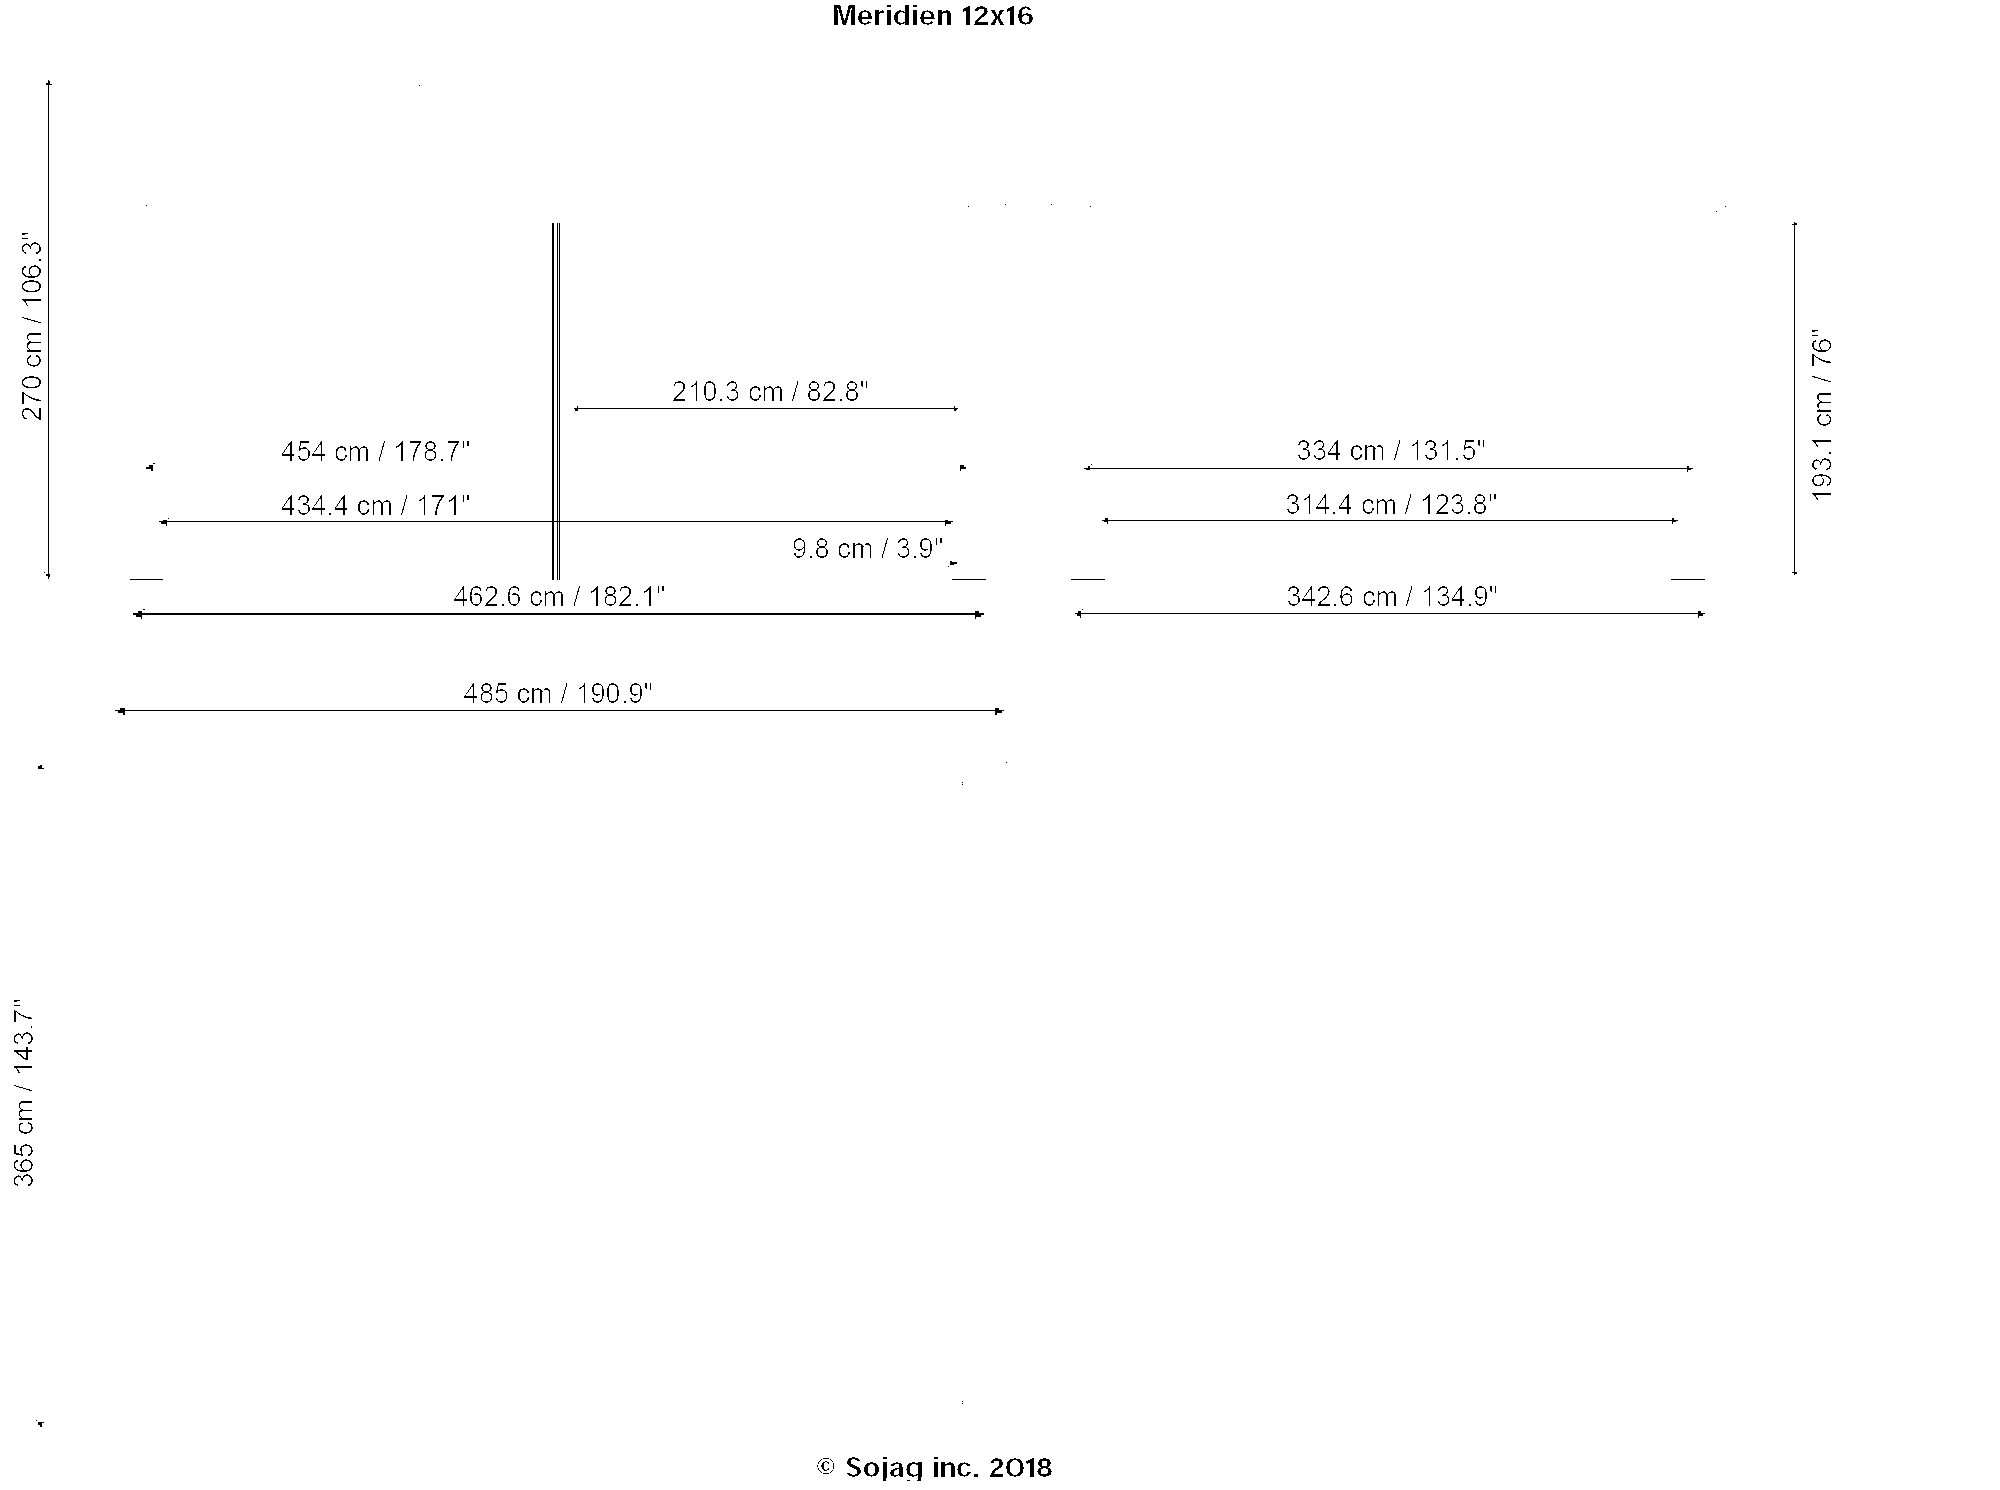 Merin Gazebo 12 x 16 ft with Mosquito Netting – The Room ... on diagrams of parks, diagrams of generators, diagrams of kitchens, diagrams of ponds, diagrams of gliders, diagrams of bridges, diagrams of plants, diagrams of trees, diagrams of fireplaces, diagrams of buildings, diagrams of landscaping, diagrams of steps, diagrams of churches, diagrams of barns, diagrams of decks, diagrams of roofs, diagrams of chairs, diagrams of flowers, diagrams of greenhouses, diagrams of houses,